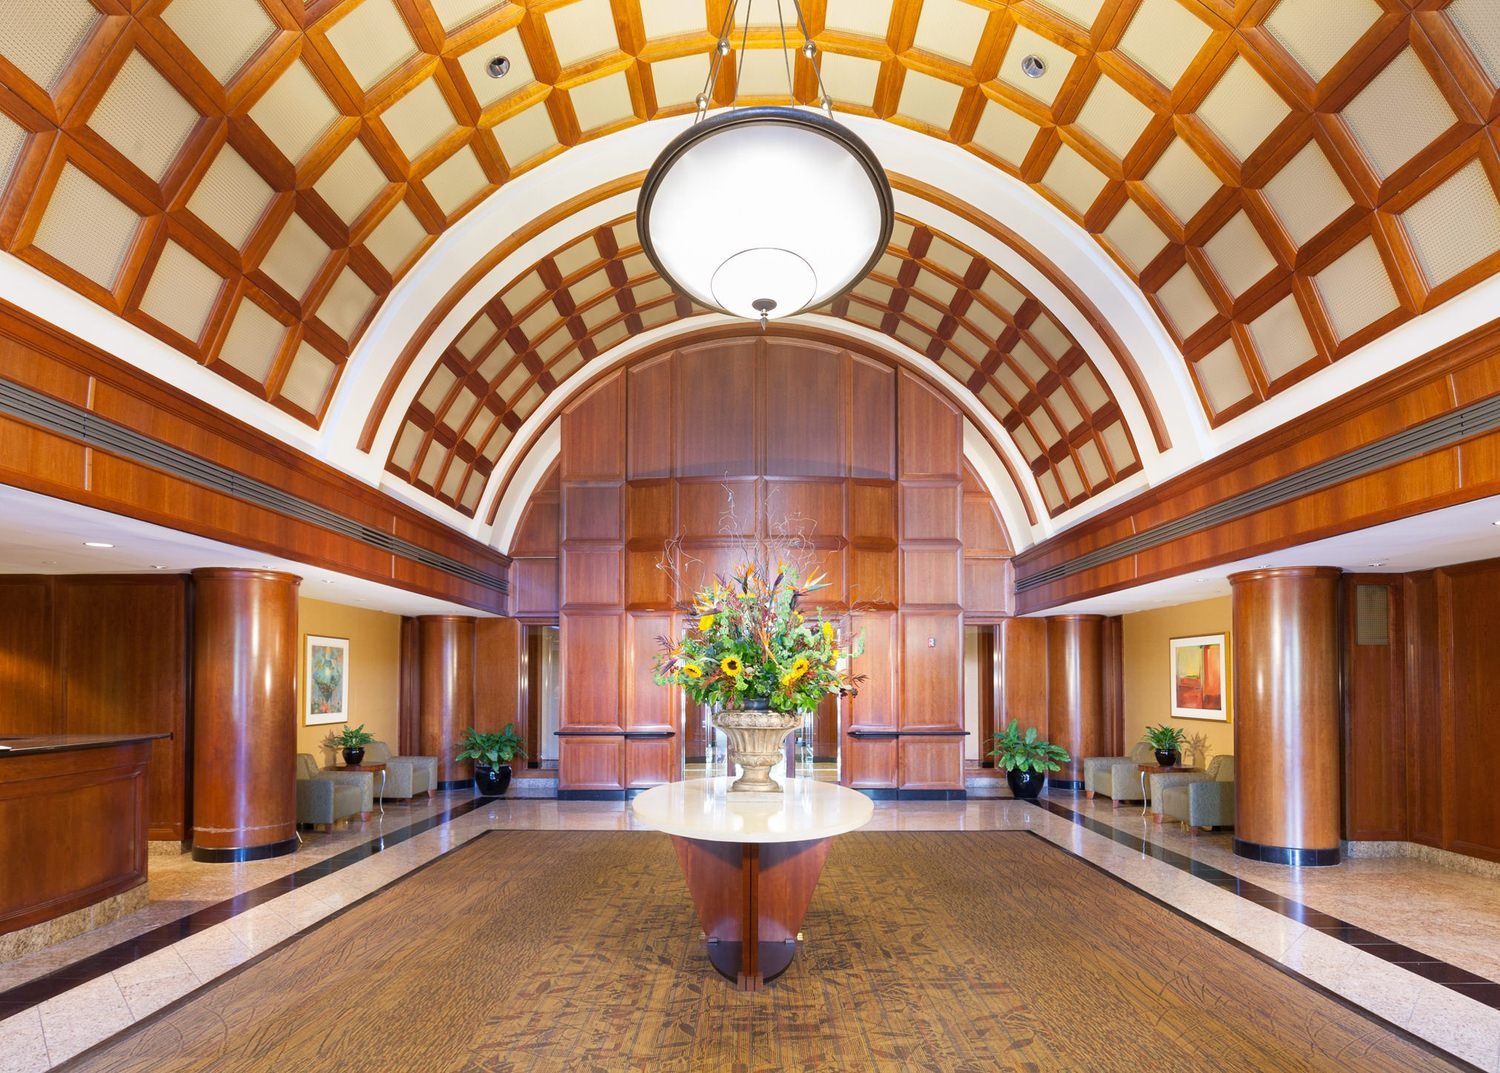 A wood paneled lobby with a ceiling that curves.